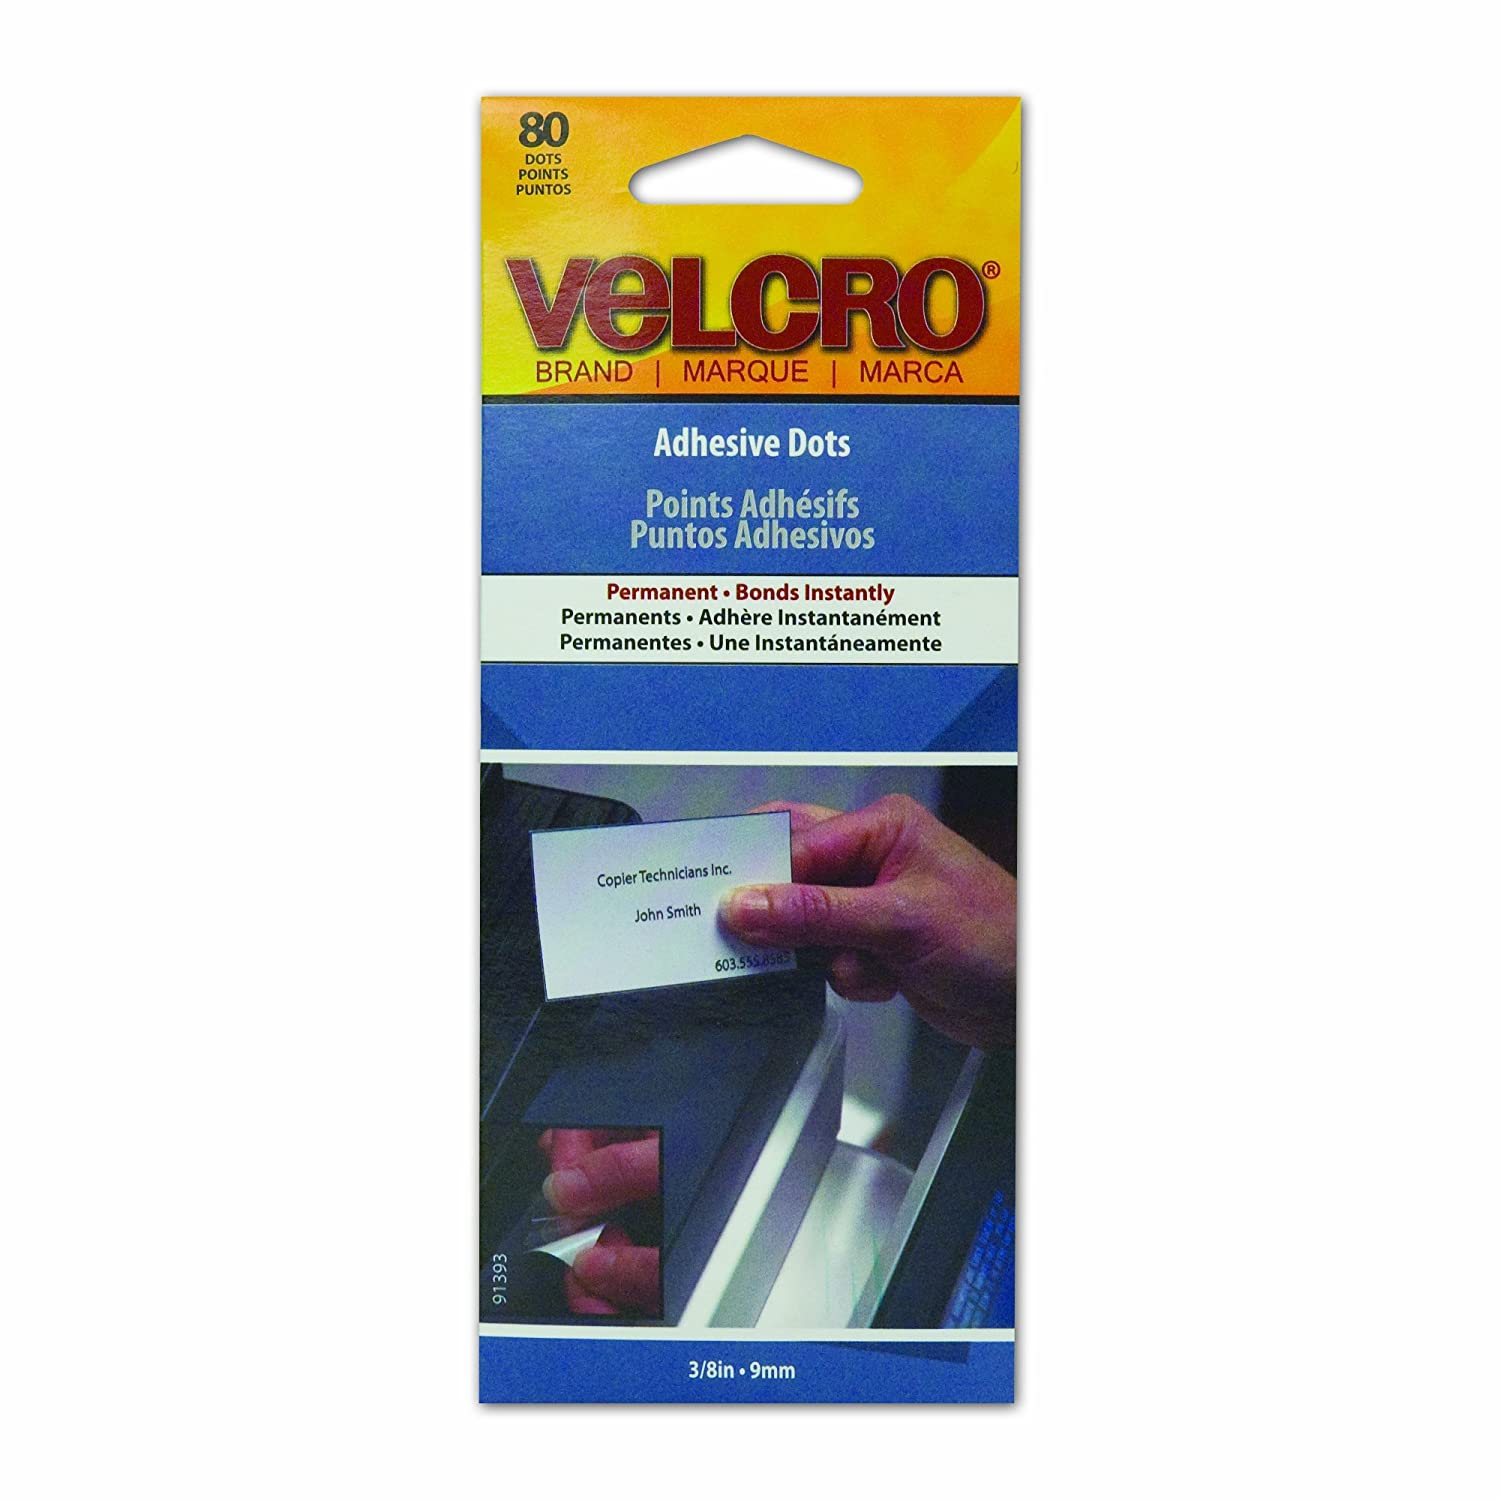 Velcro(r) Brand Fasteners Adhesive Dots 80-Pack-Permanent 9139-3